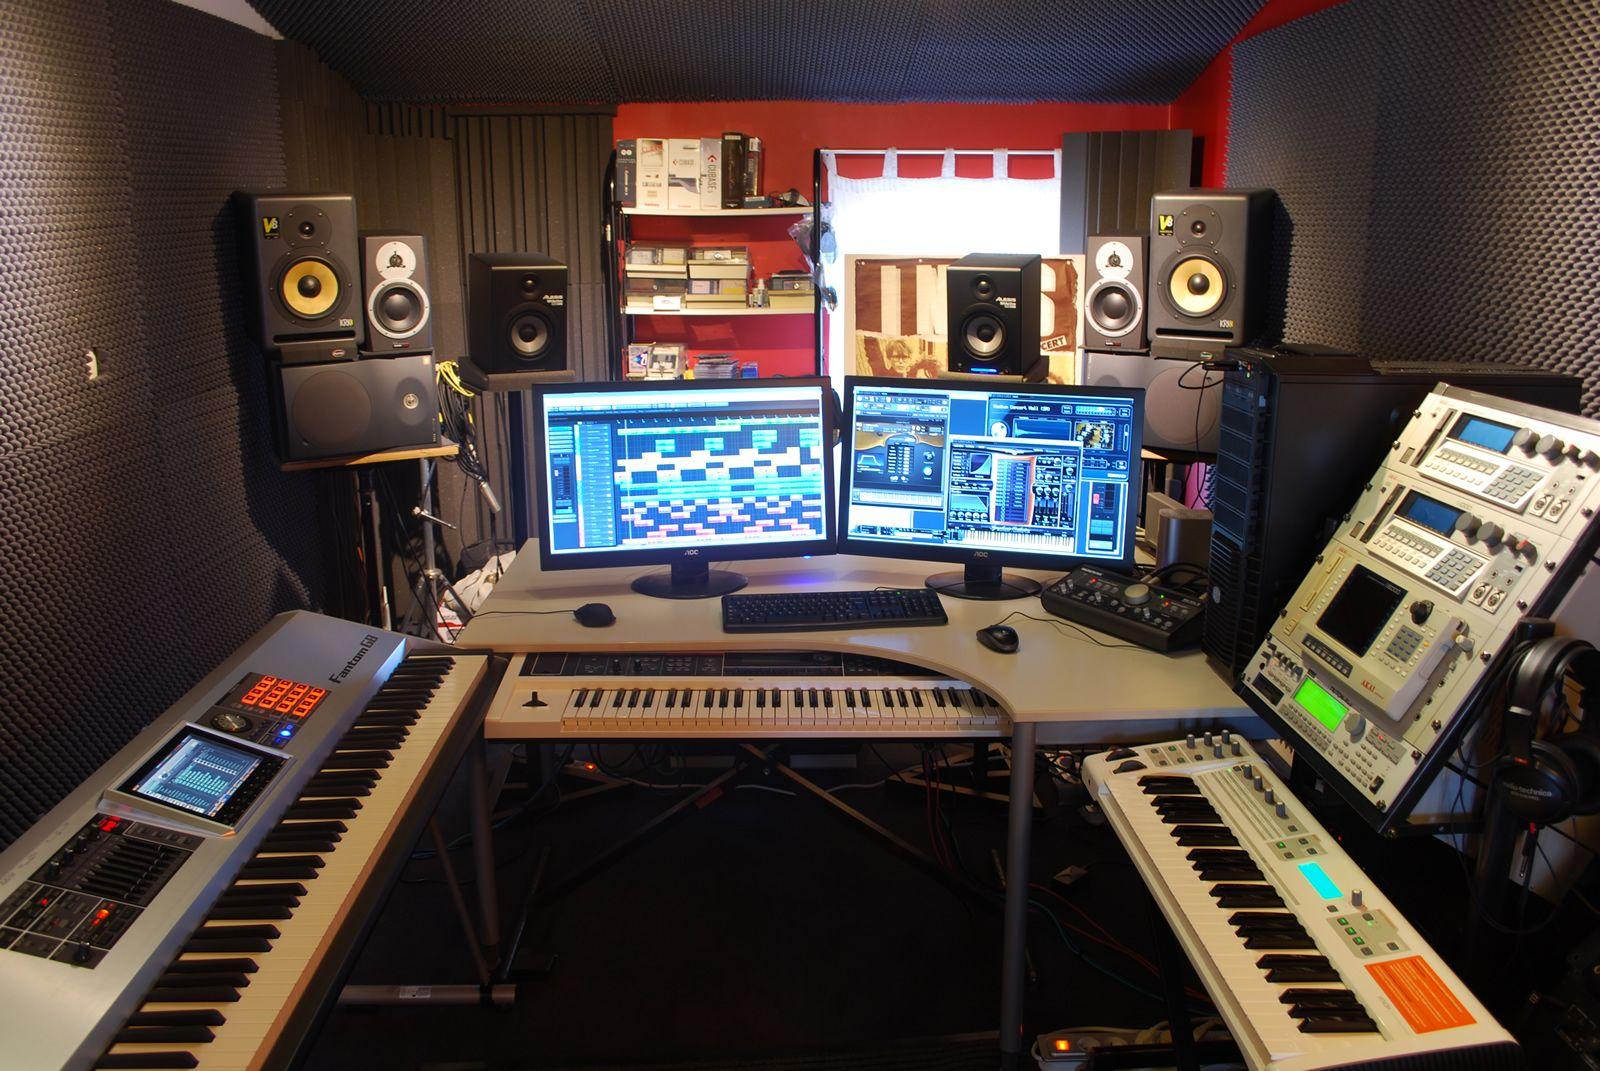 medium resolution of image result for composer home studio